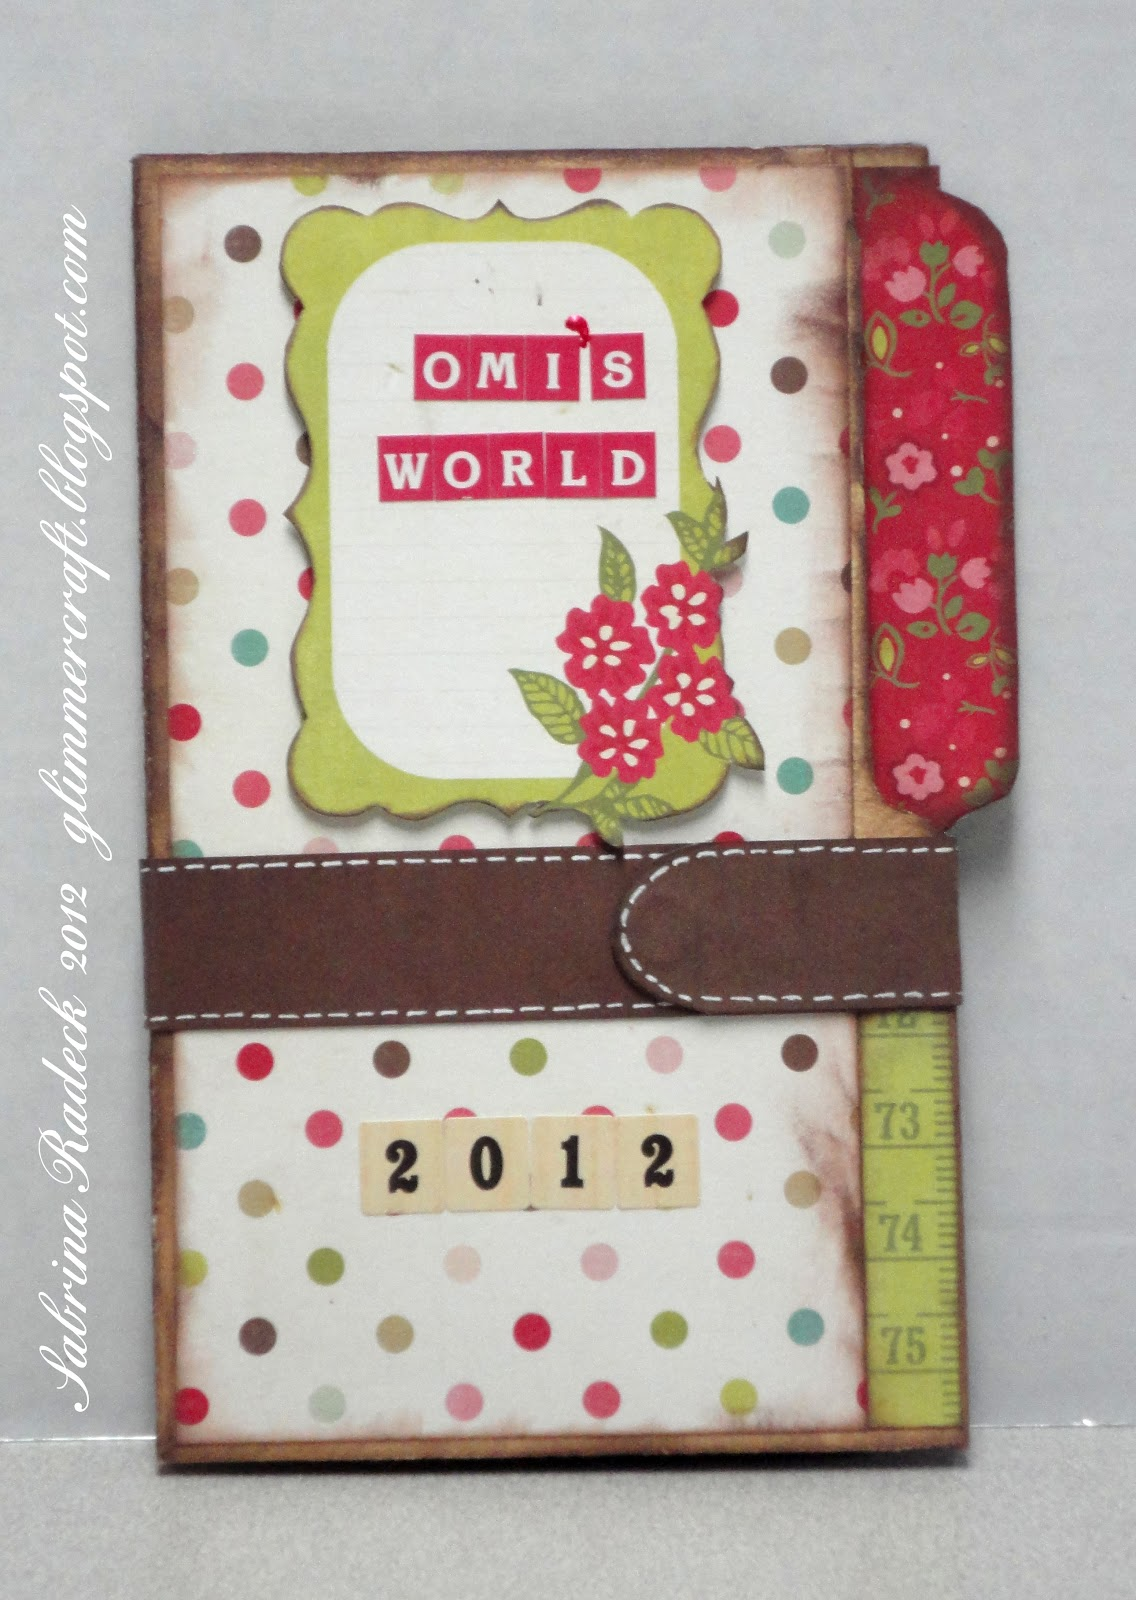 How to make scrapbook easy - Yes It Is Quick And Easy Once You Ve Made One You Could Probably Make One In An Afternoon If You Don T Get Too Elaborate That Is It S All In How You